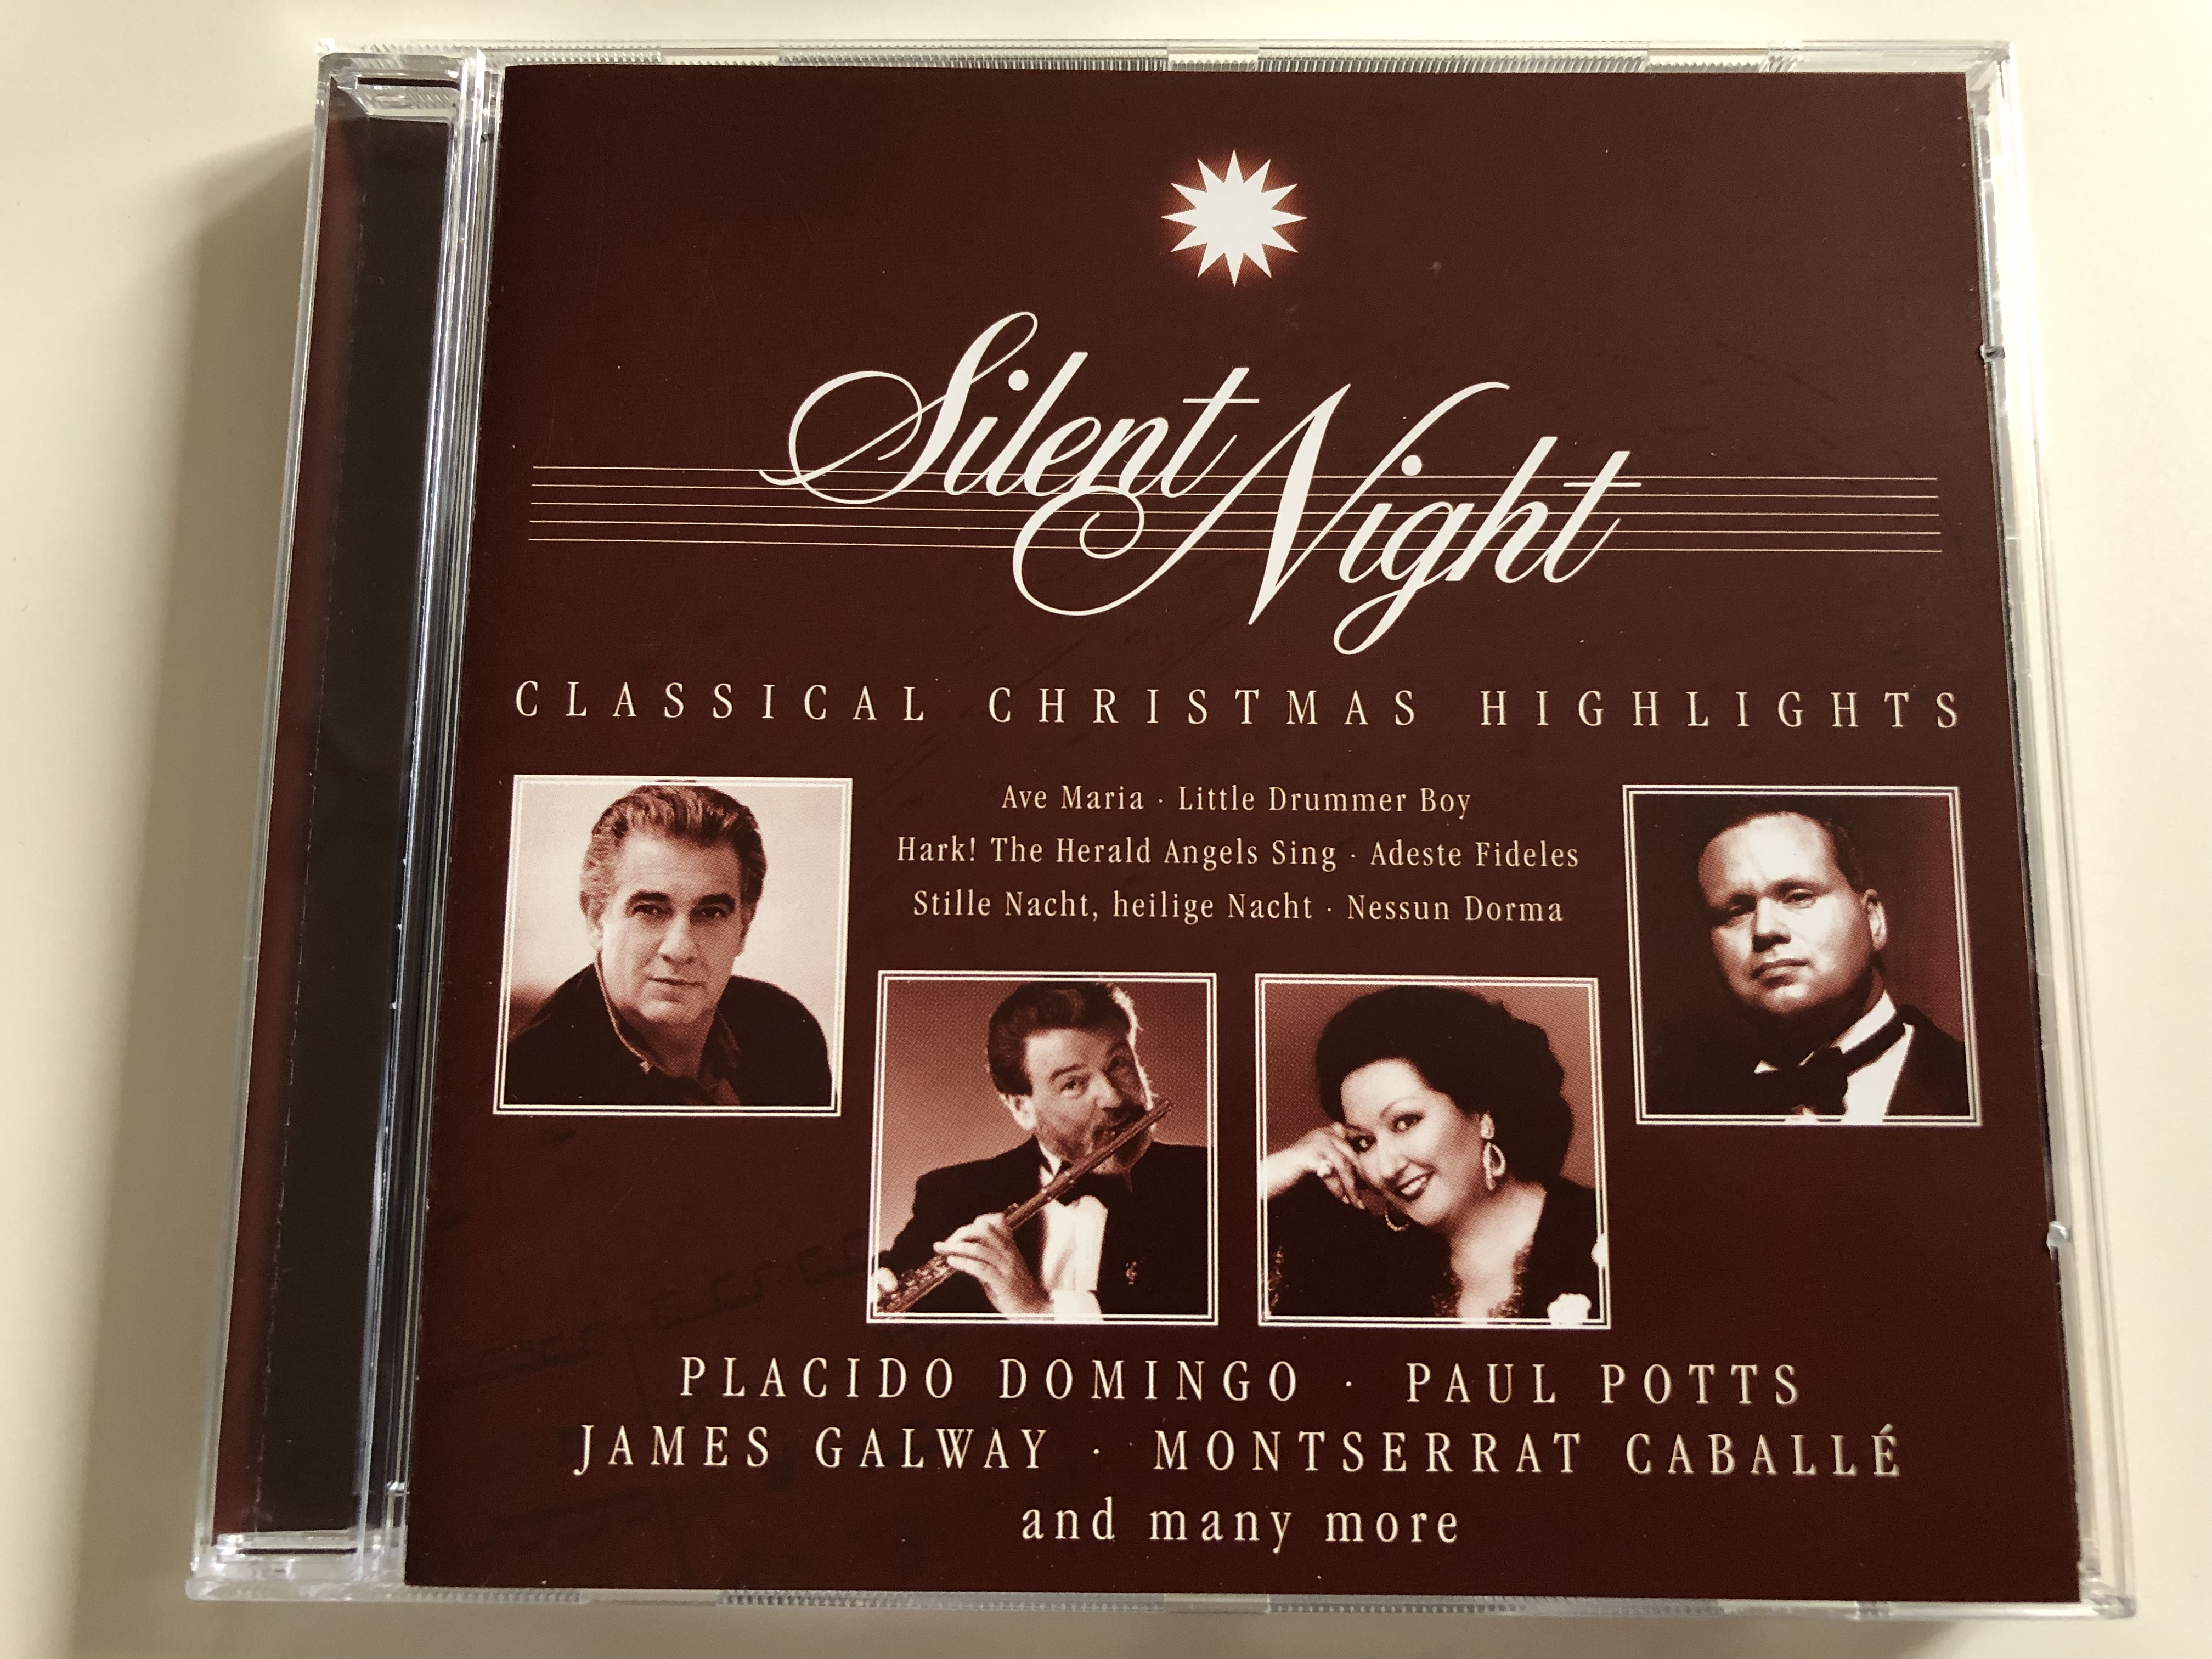 silent-night-classical-christmas-highlights-placido-domingo-paul-potts-james-galway-montserrat-caball-ave-maria-little-drummer-boy-hark-the-herald-angels-sing-audio-cd-2009-sony-music-1-.jpg